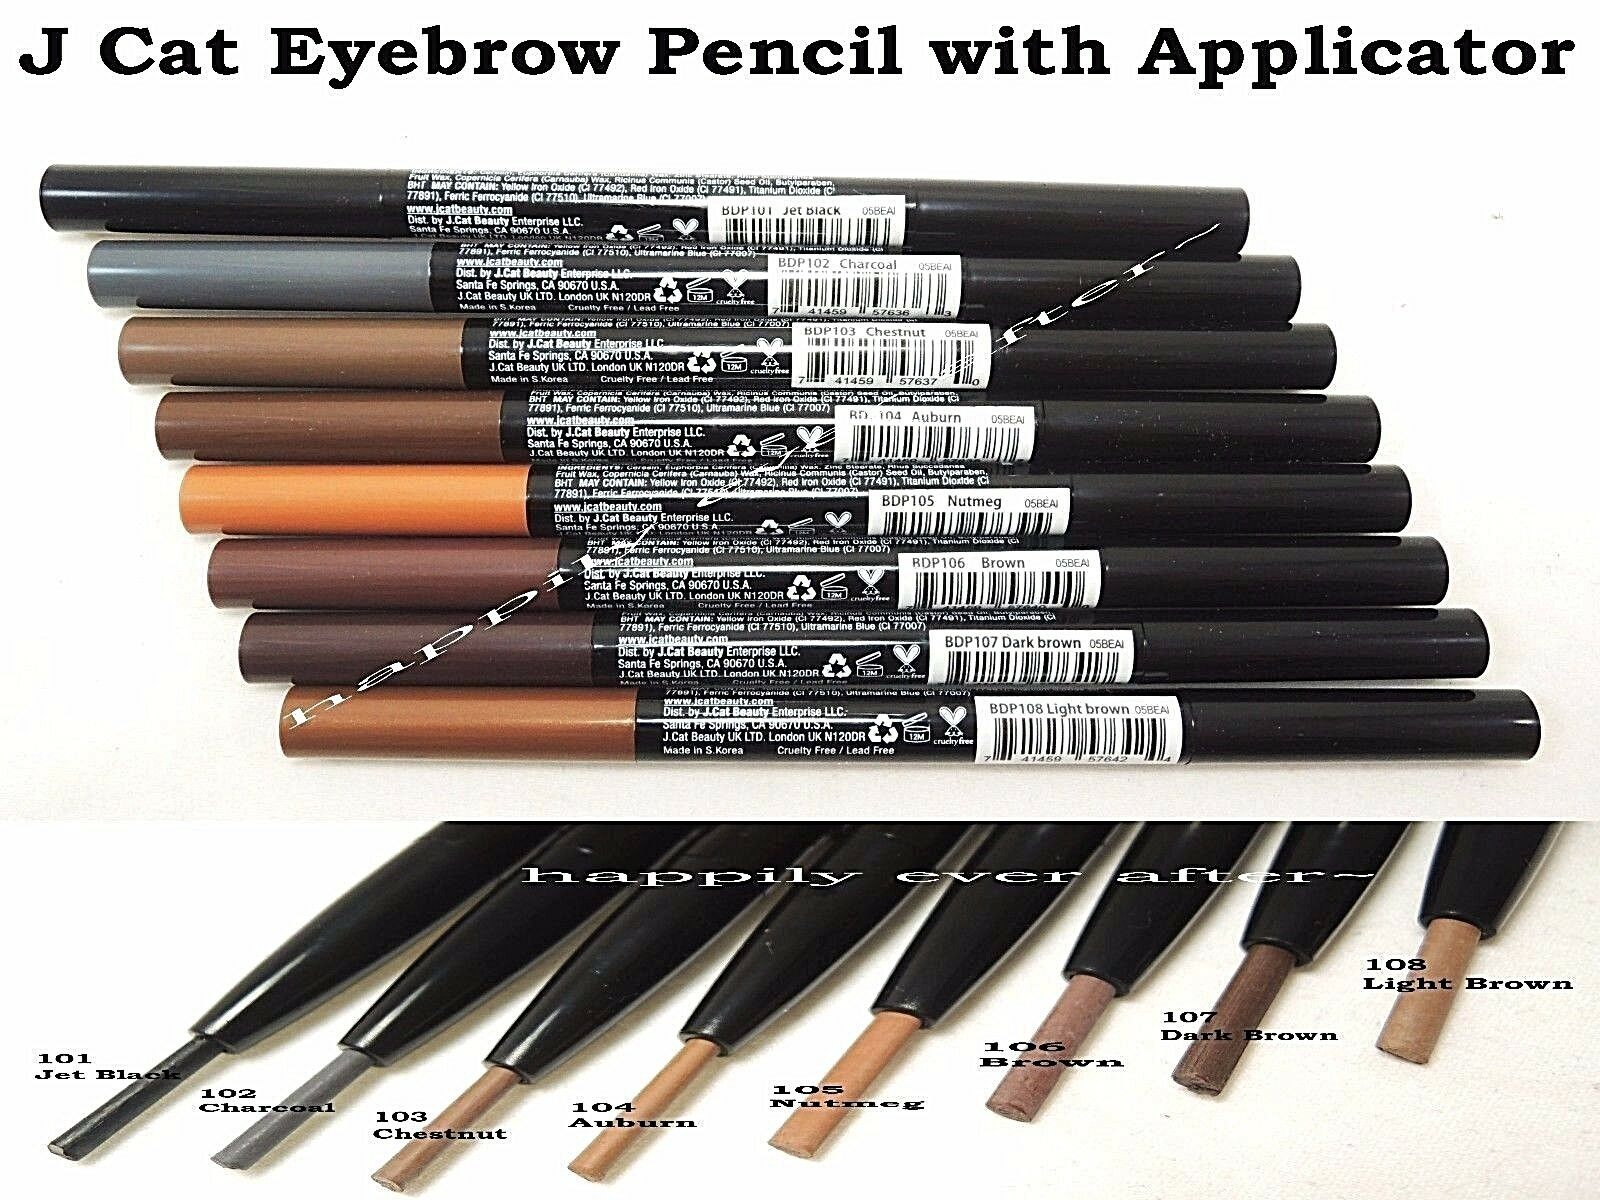 J Cat Eyebrow Pencil - Automatic Pencil - LEAD FREE *US SELL